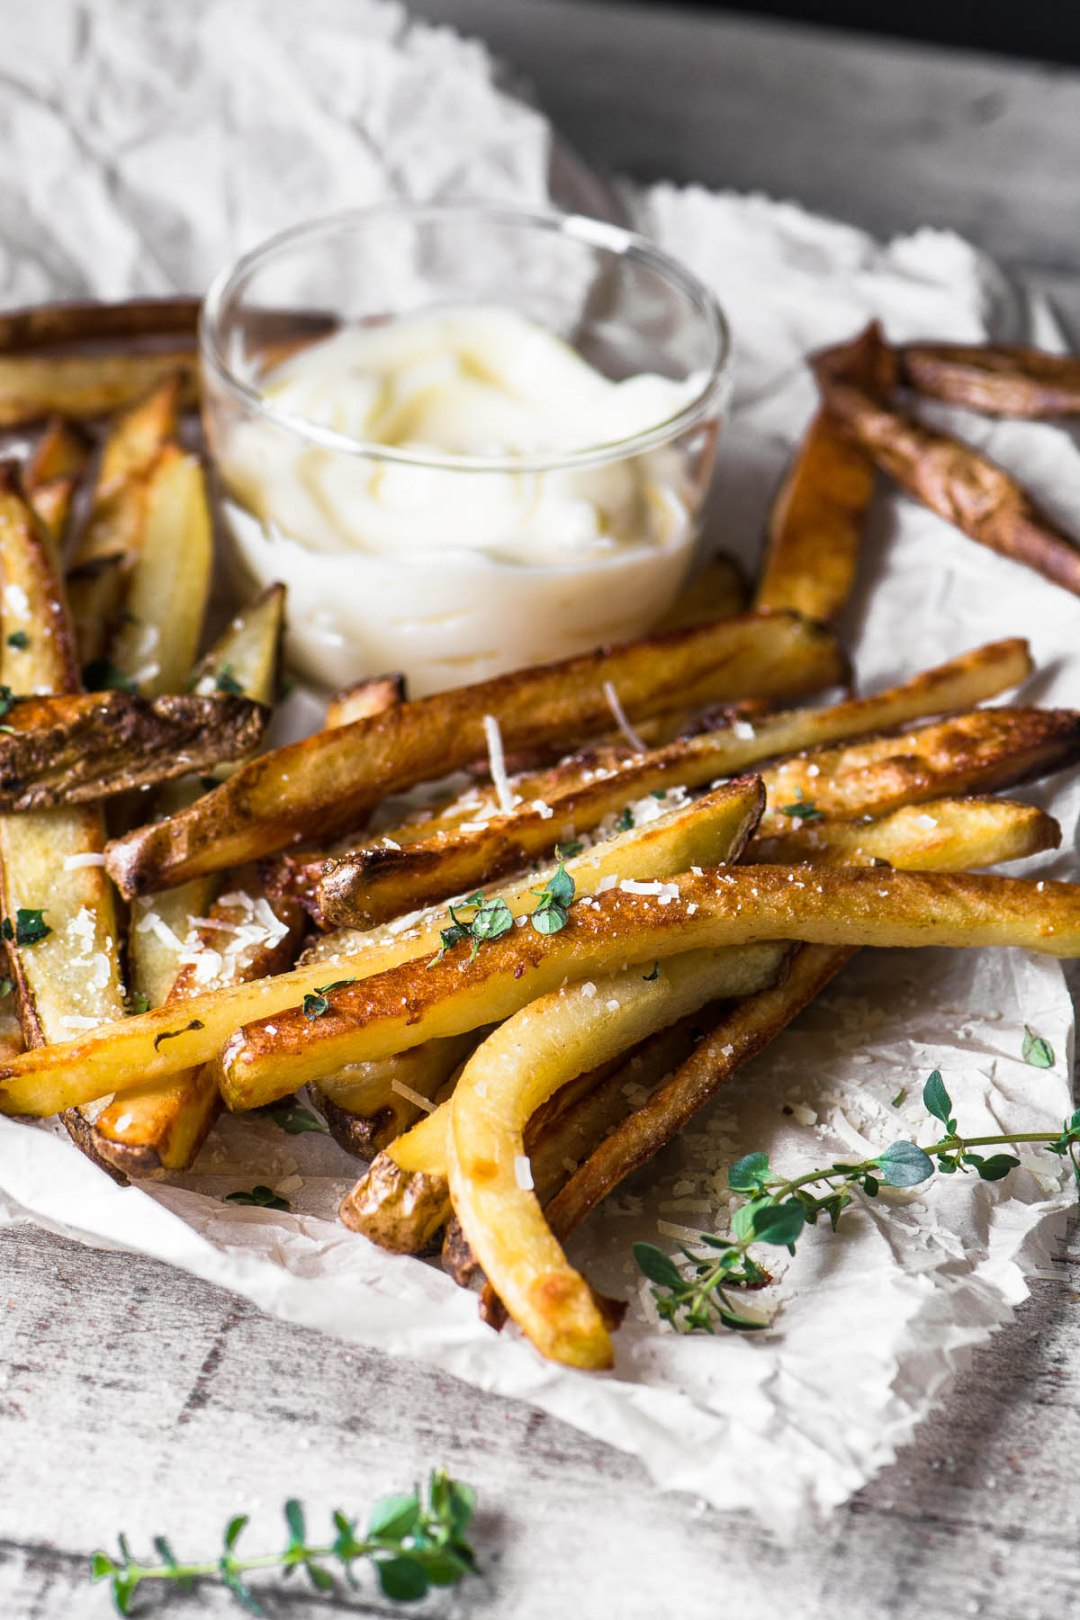 Baked truffle fries on a parchment paper with truffle mayo for dipping